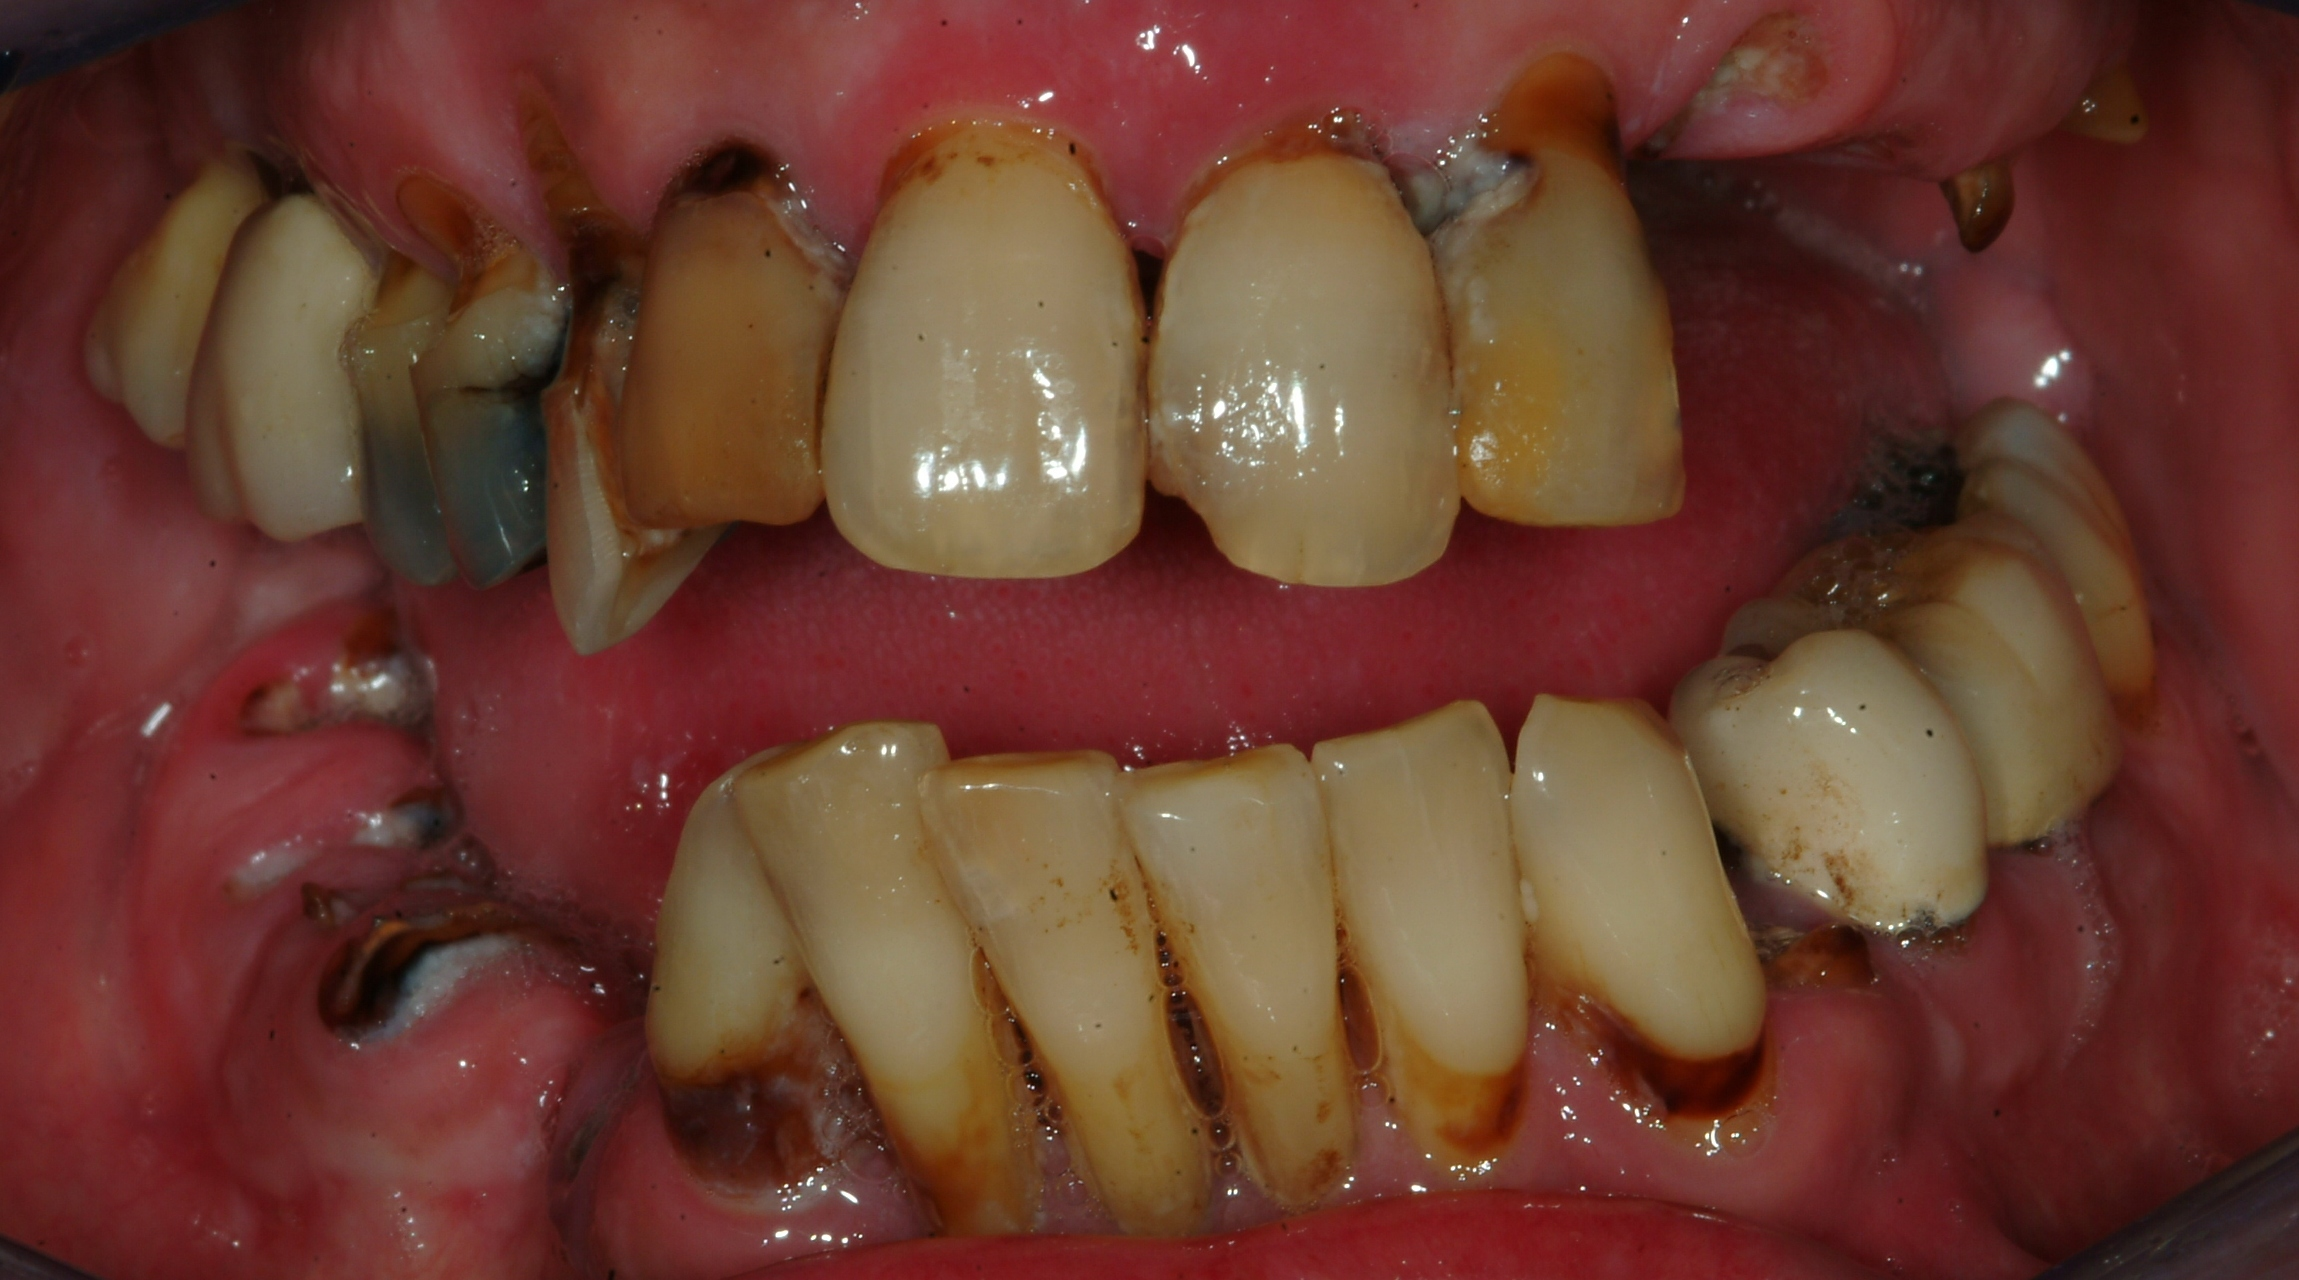 SEVERE PERIODONTAL DISEASE